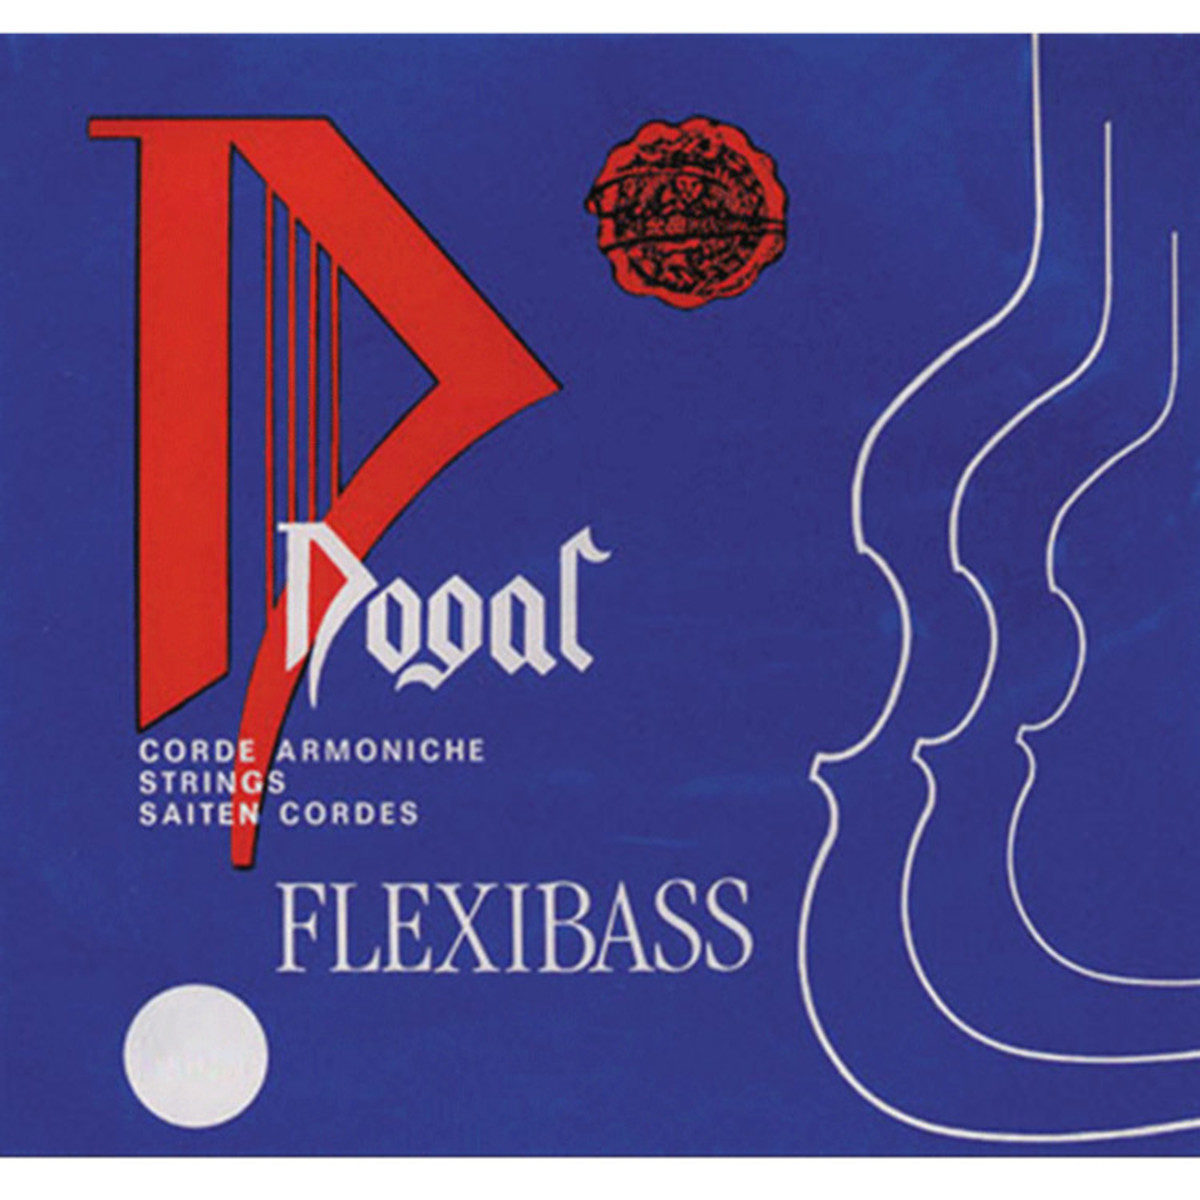 Dogal Flexibass Double Bass Set